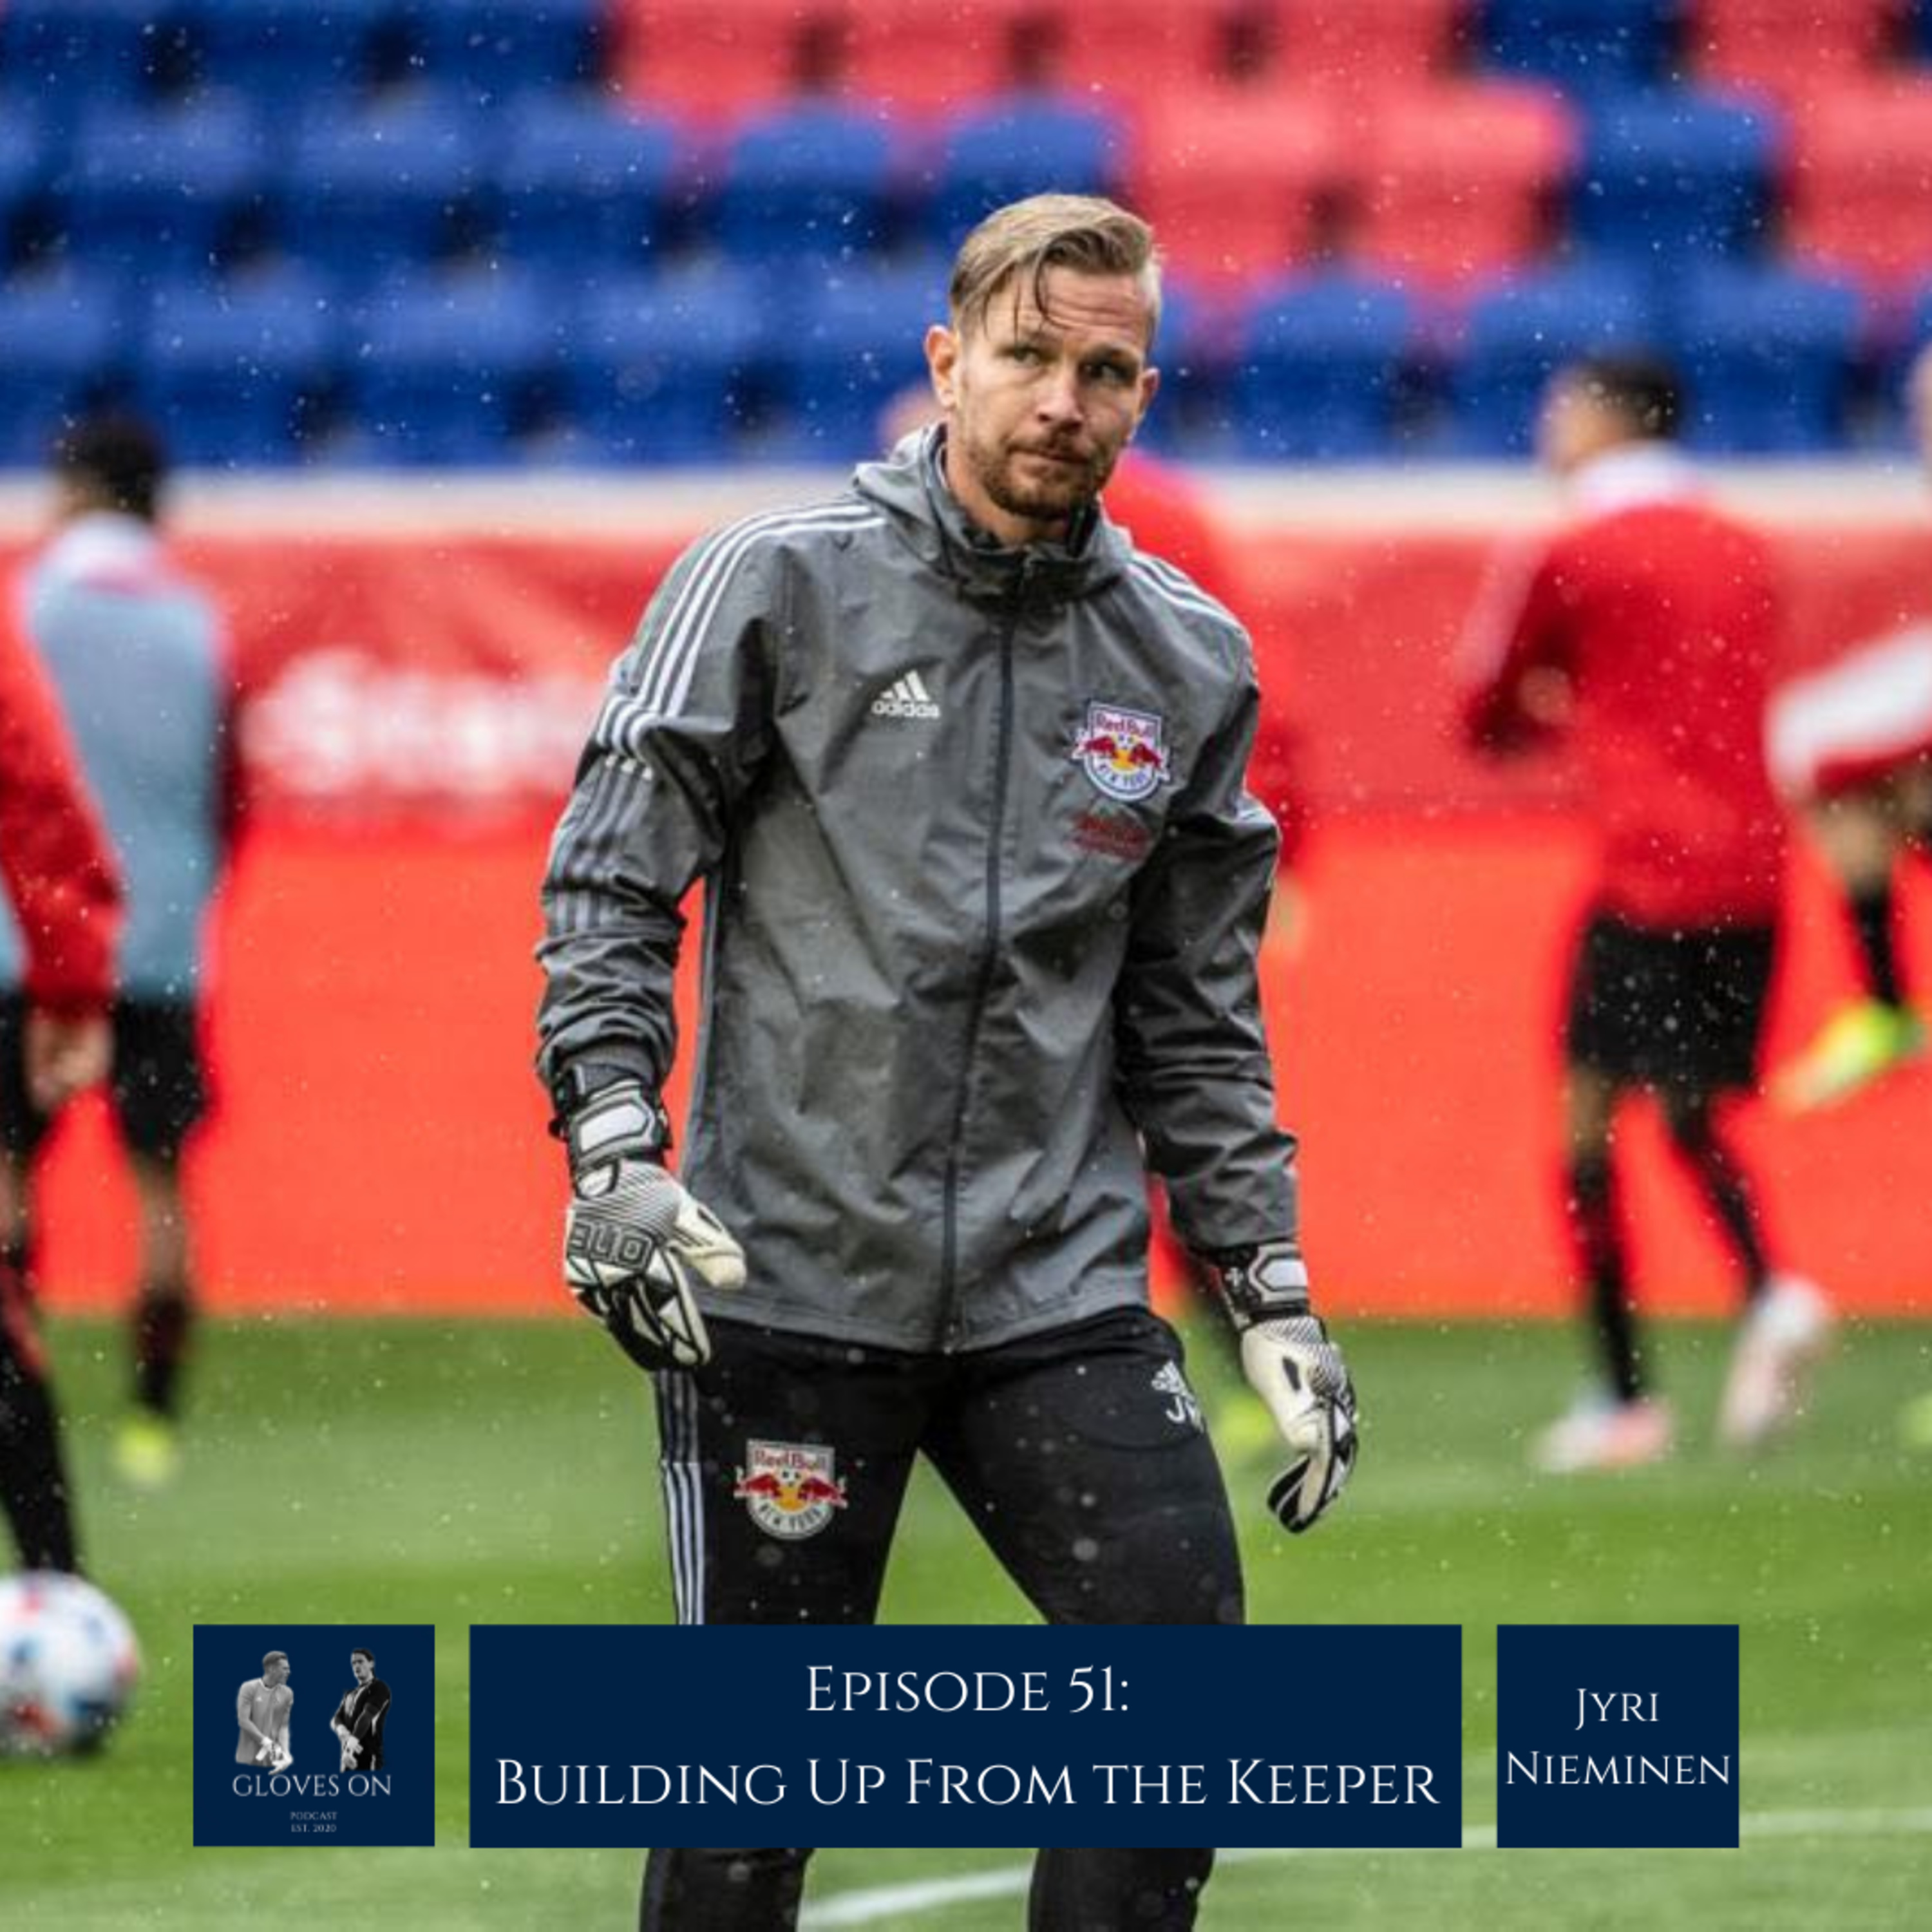 Building Up from the Keeper | Jyri Nieminen